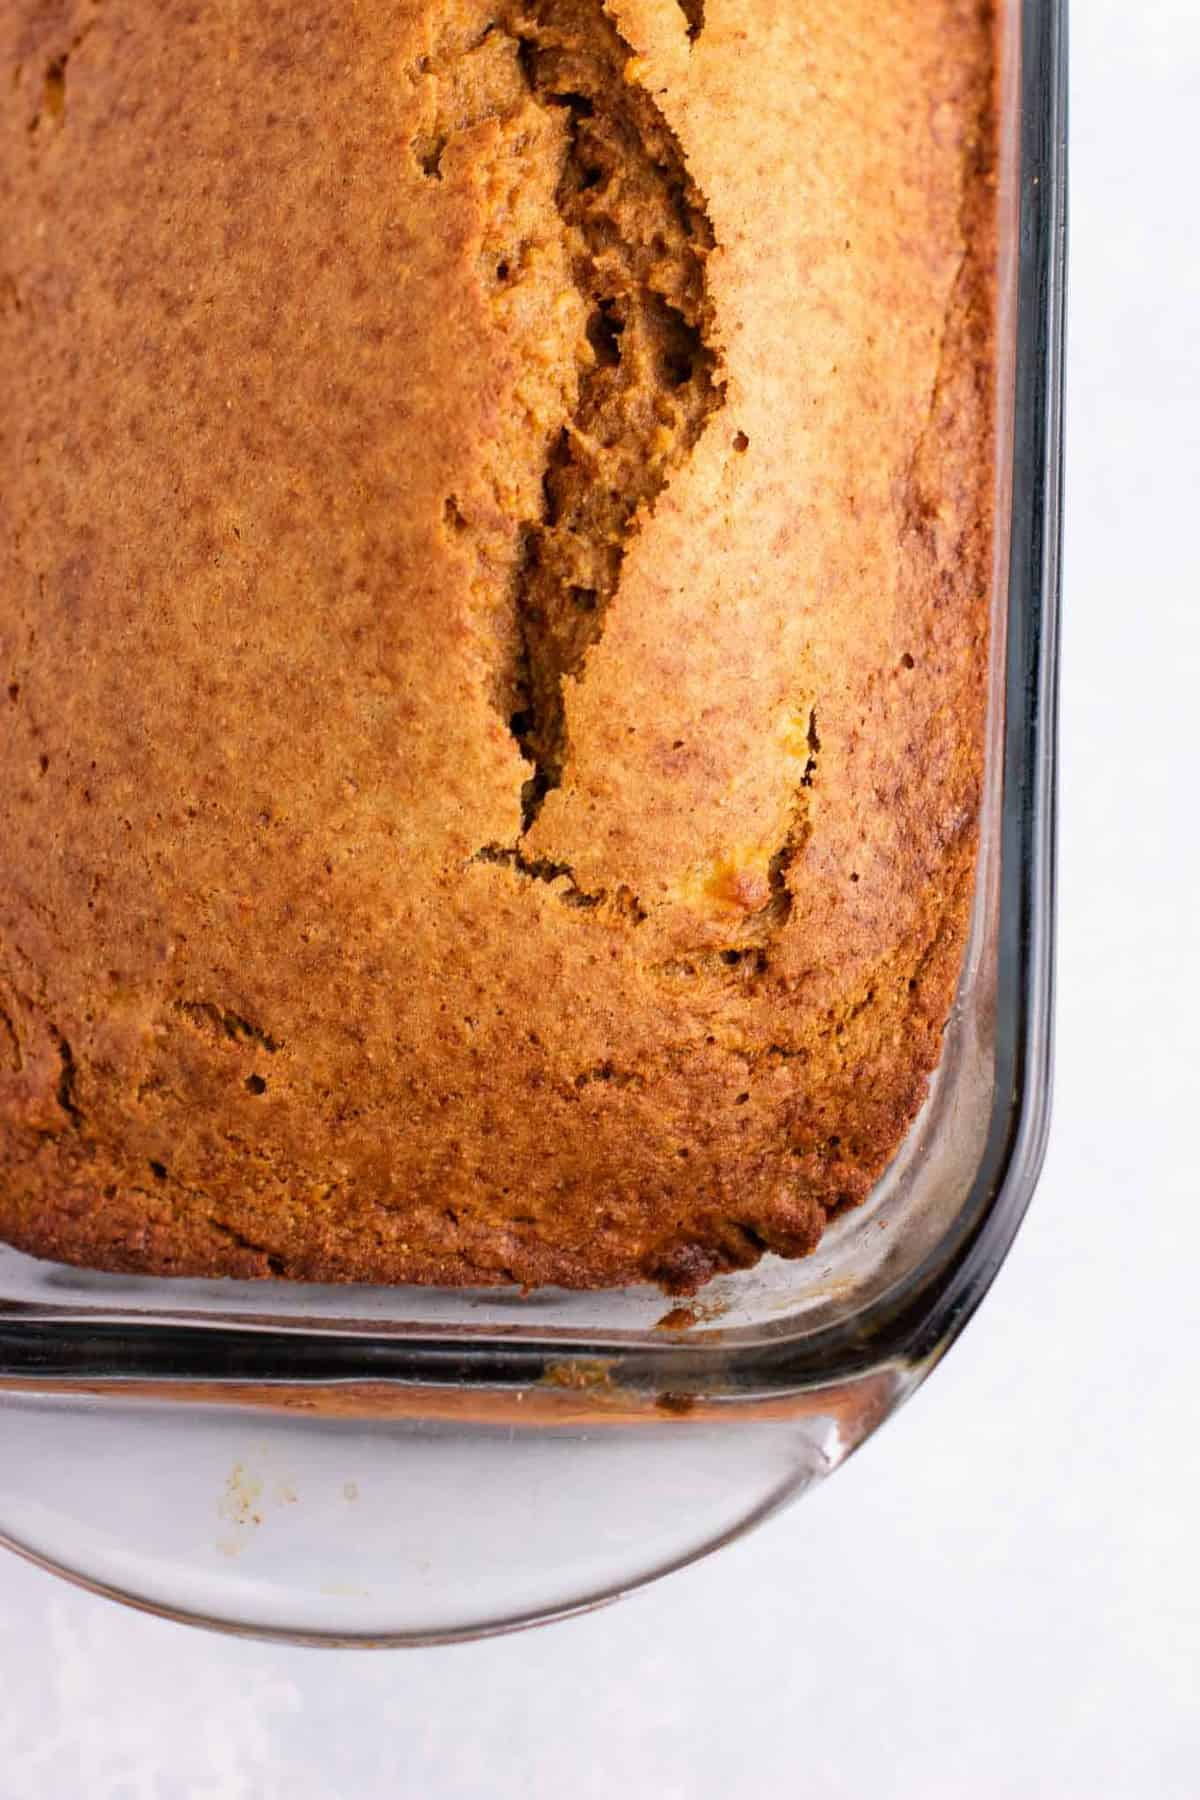 perfect whole wheat banana bread - banana bread with whole wheat flour. Oil free, dairy free, and so delicious! #bananabread #wholewheatbananabread #bananbreadrecipe #healthy #dairyfree #oilfree